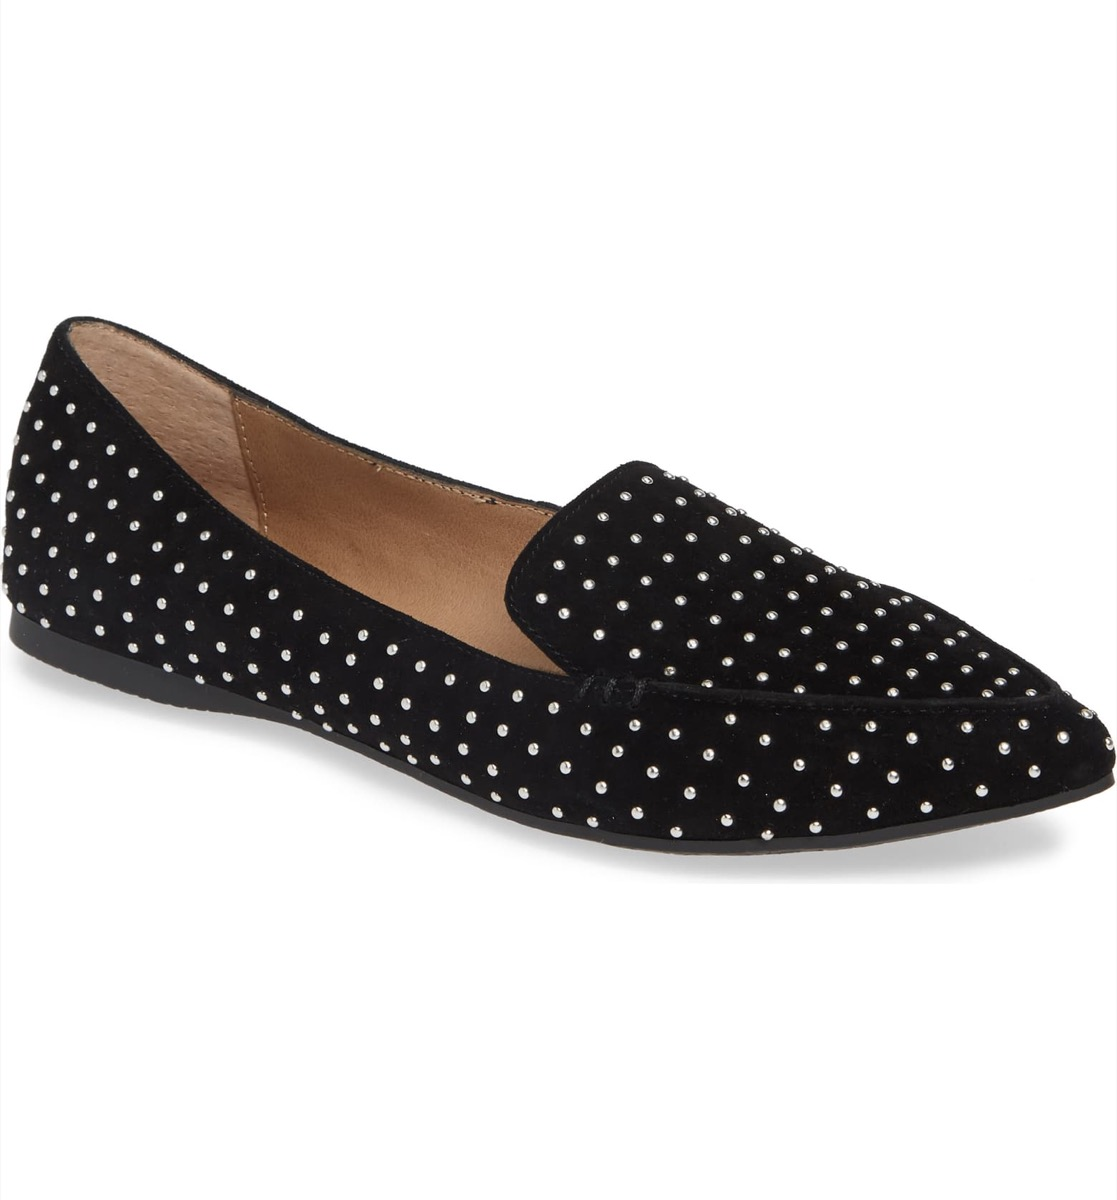 studded flats, nordstrom anniversary sale